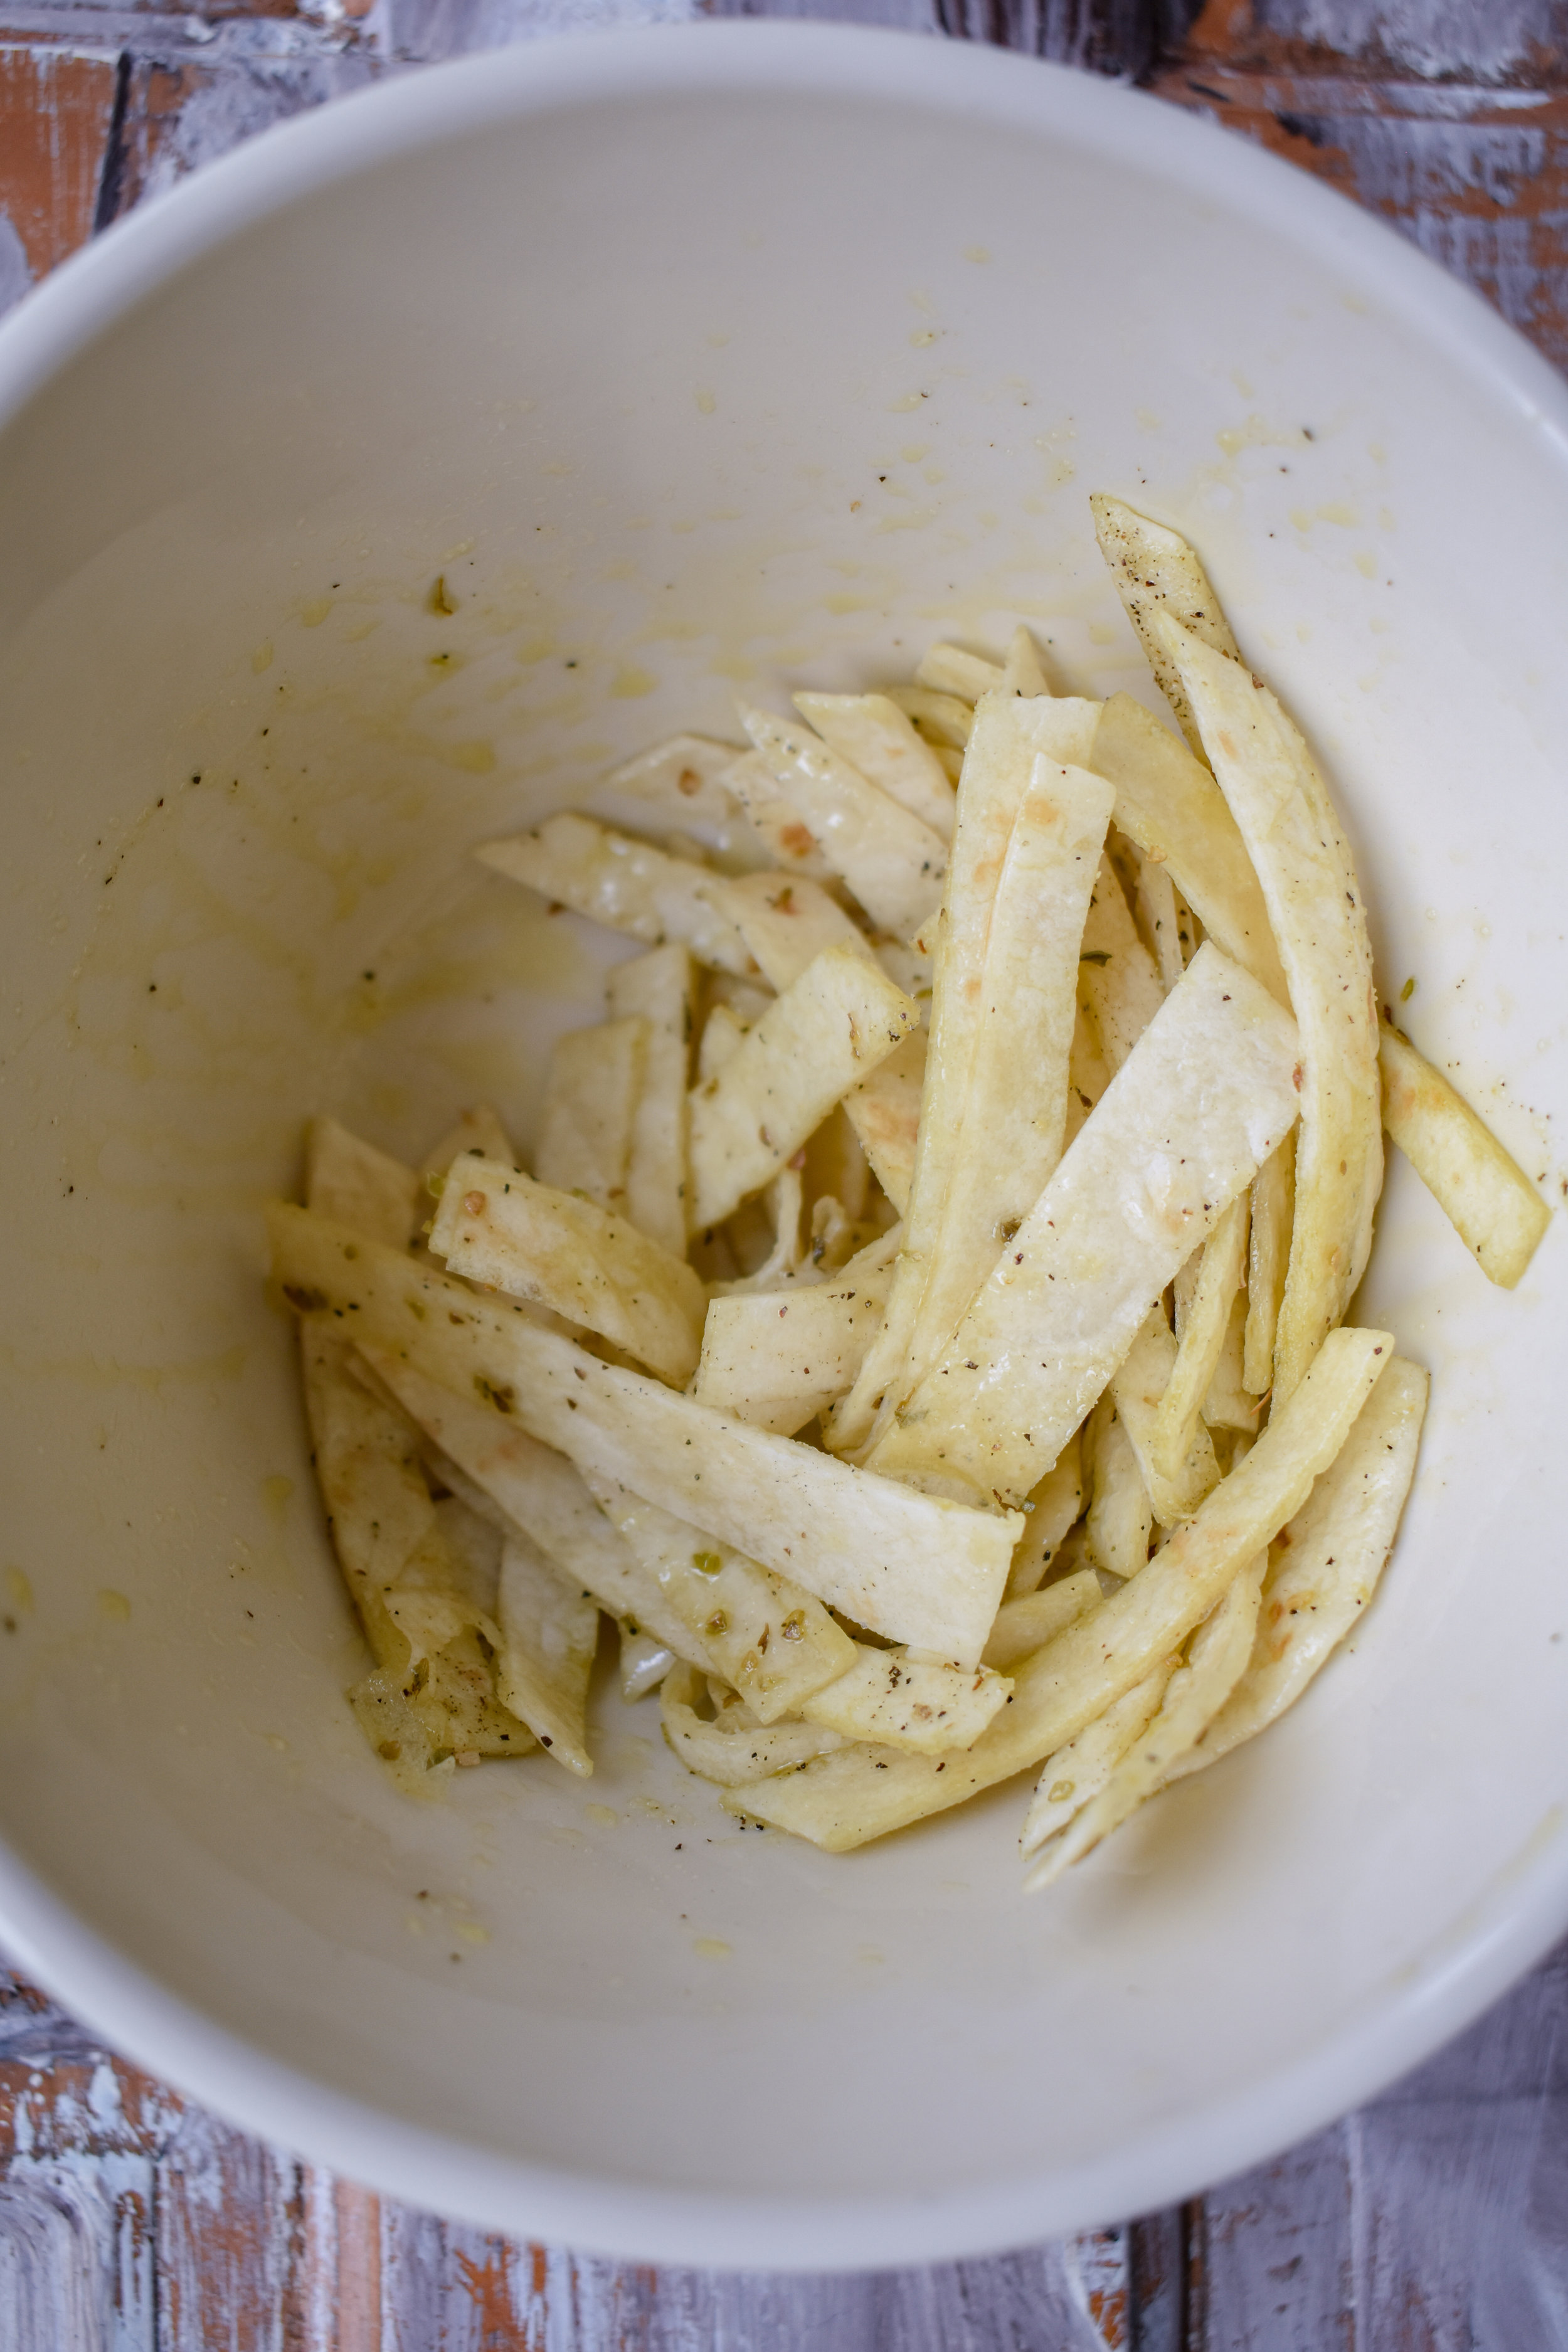 7. The last bit of prep is the tortilla strips. Stack them on top of each other and cut in 1/2, stack again so you have 8 equal pieces, then cut small strips from the cut edge to the rounded edge about 1/4 inch in width. Add the strips to a bowl, mix with the avocado oil, salt, and pepper.